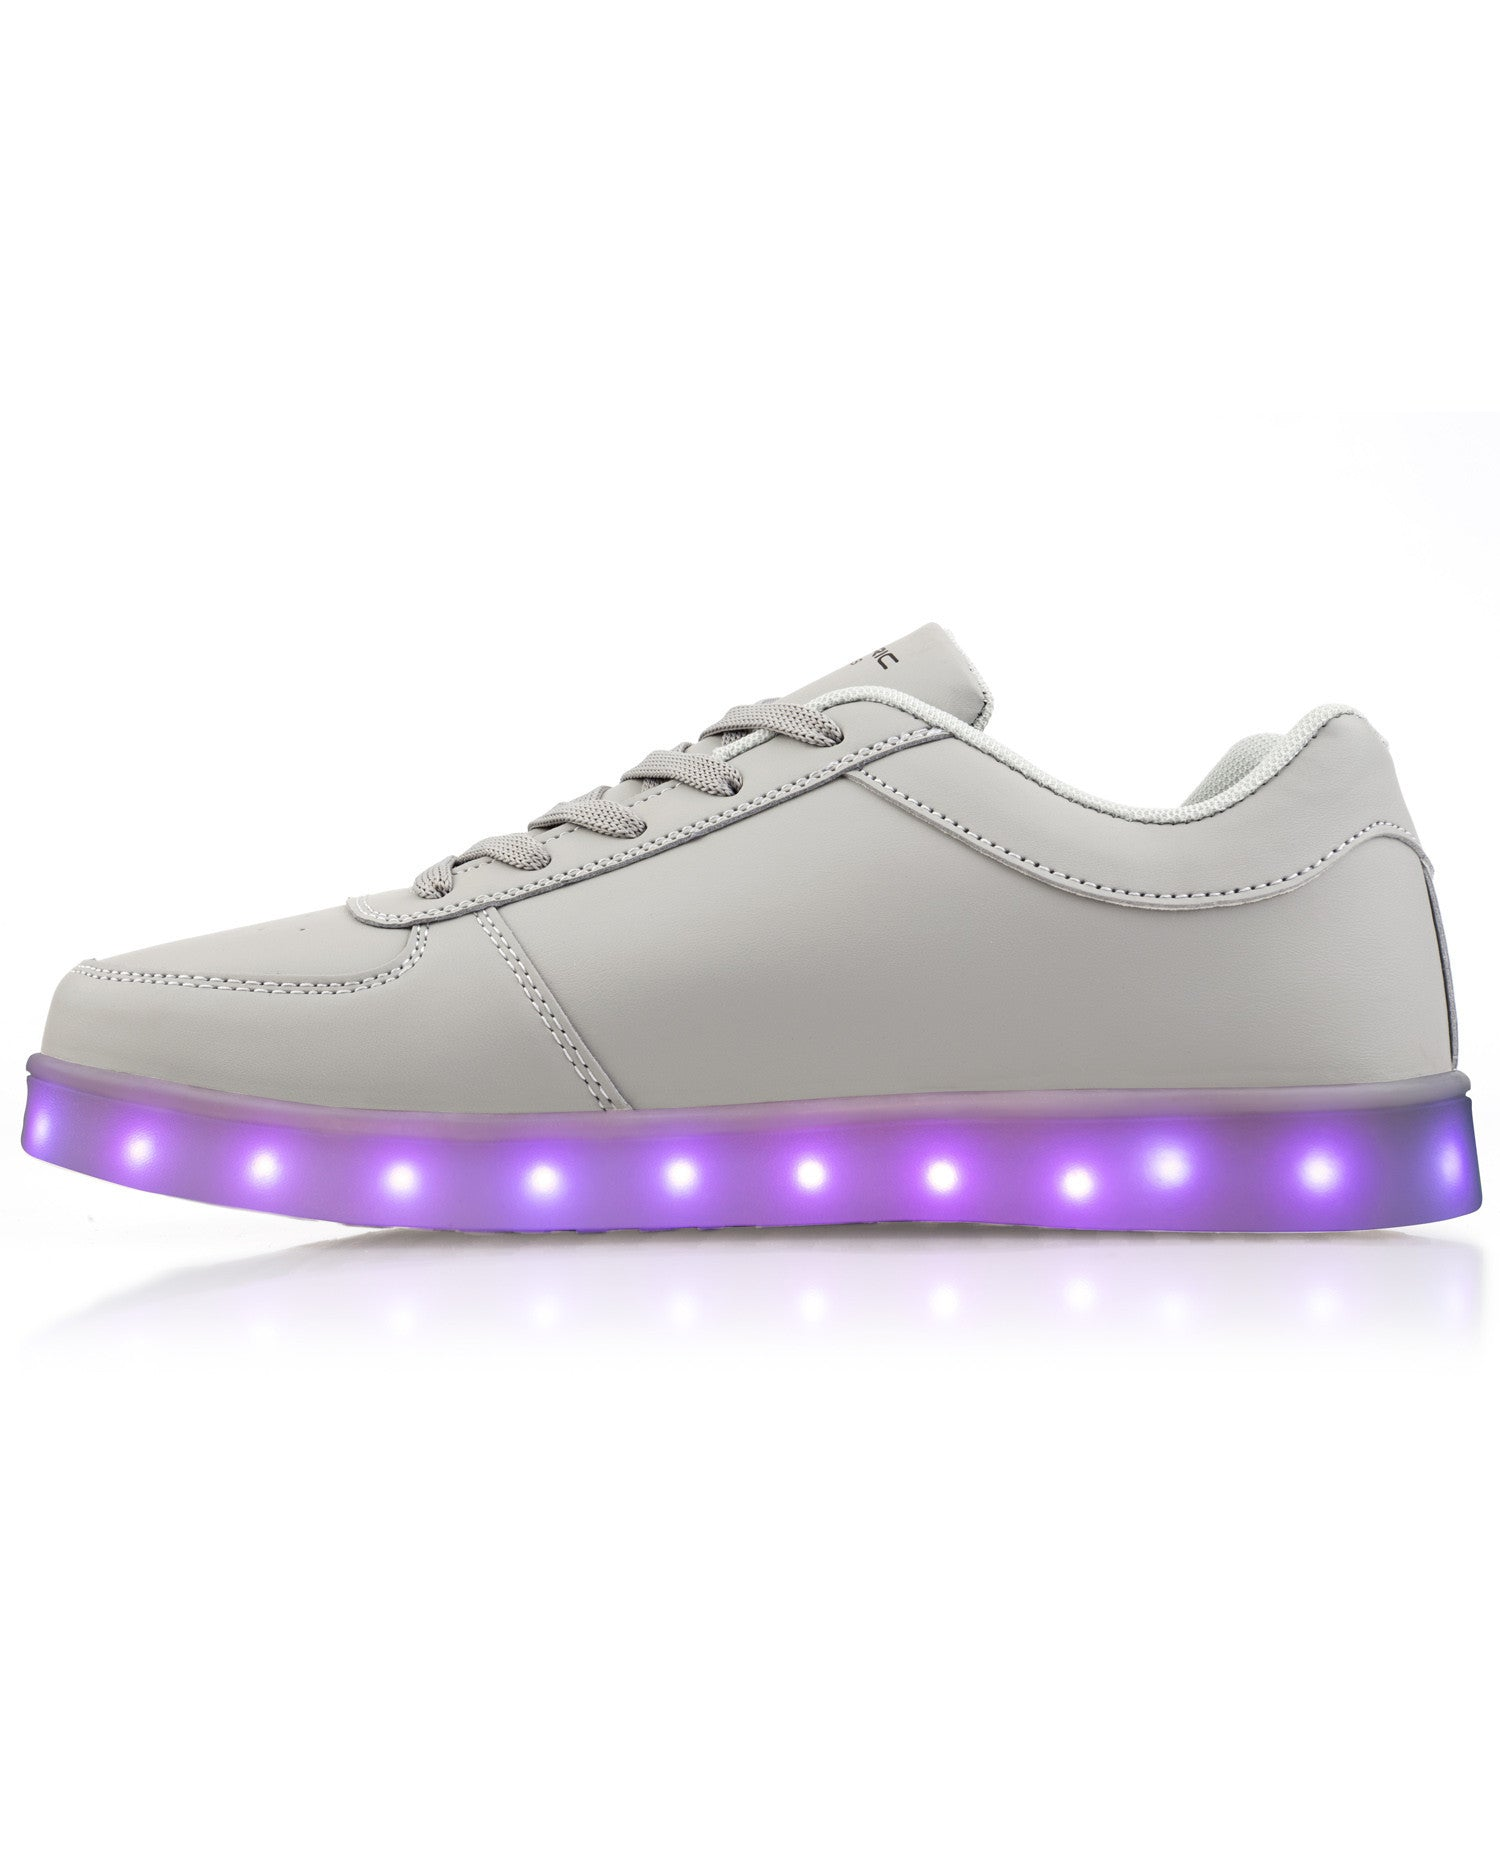 Electric Shoes - All Black - Electric Styles | World's Number 1 Light Up Shoe Store - {product_type}} -  - 18